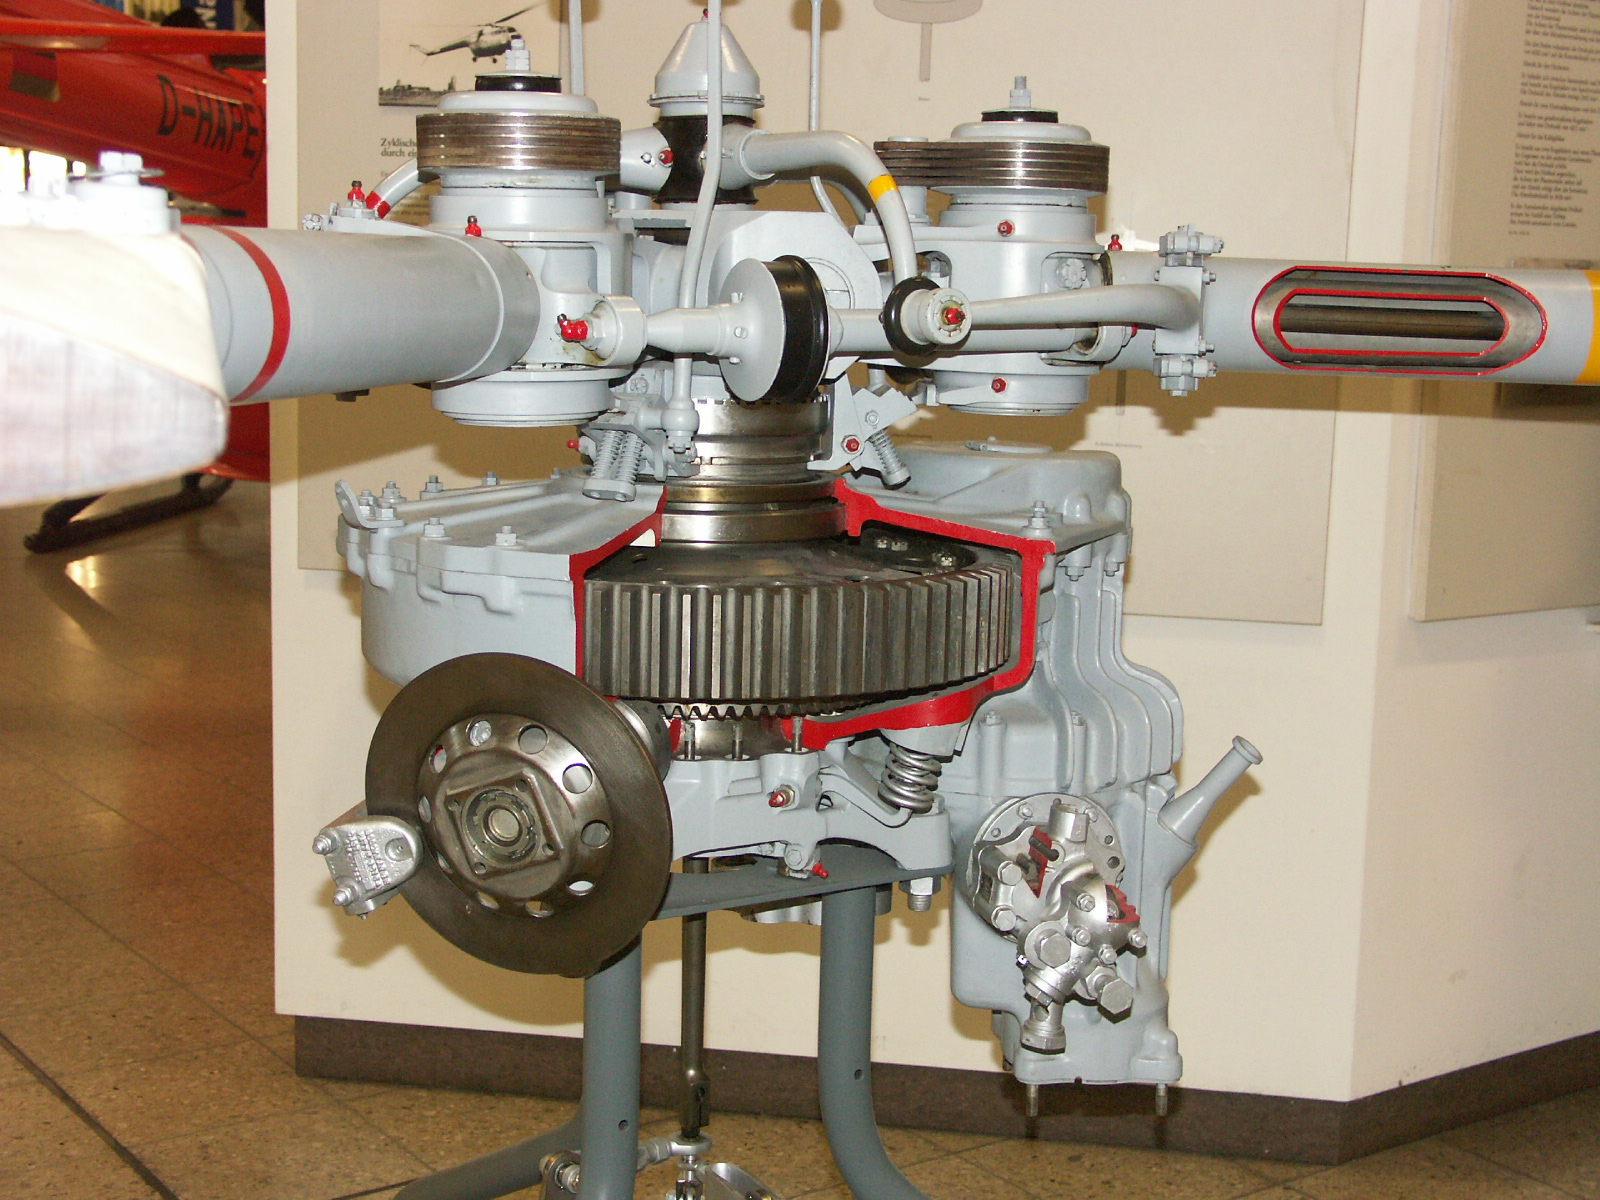 hight resolution of gearbox cutaway of a bristol sycamore helicopter at deutsches museum munich 1600x1200